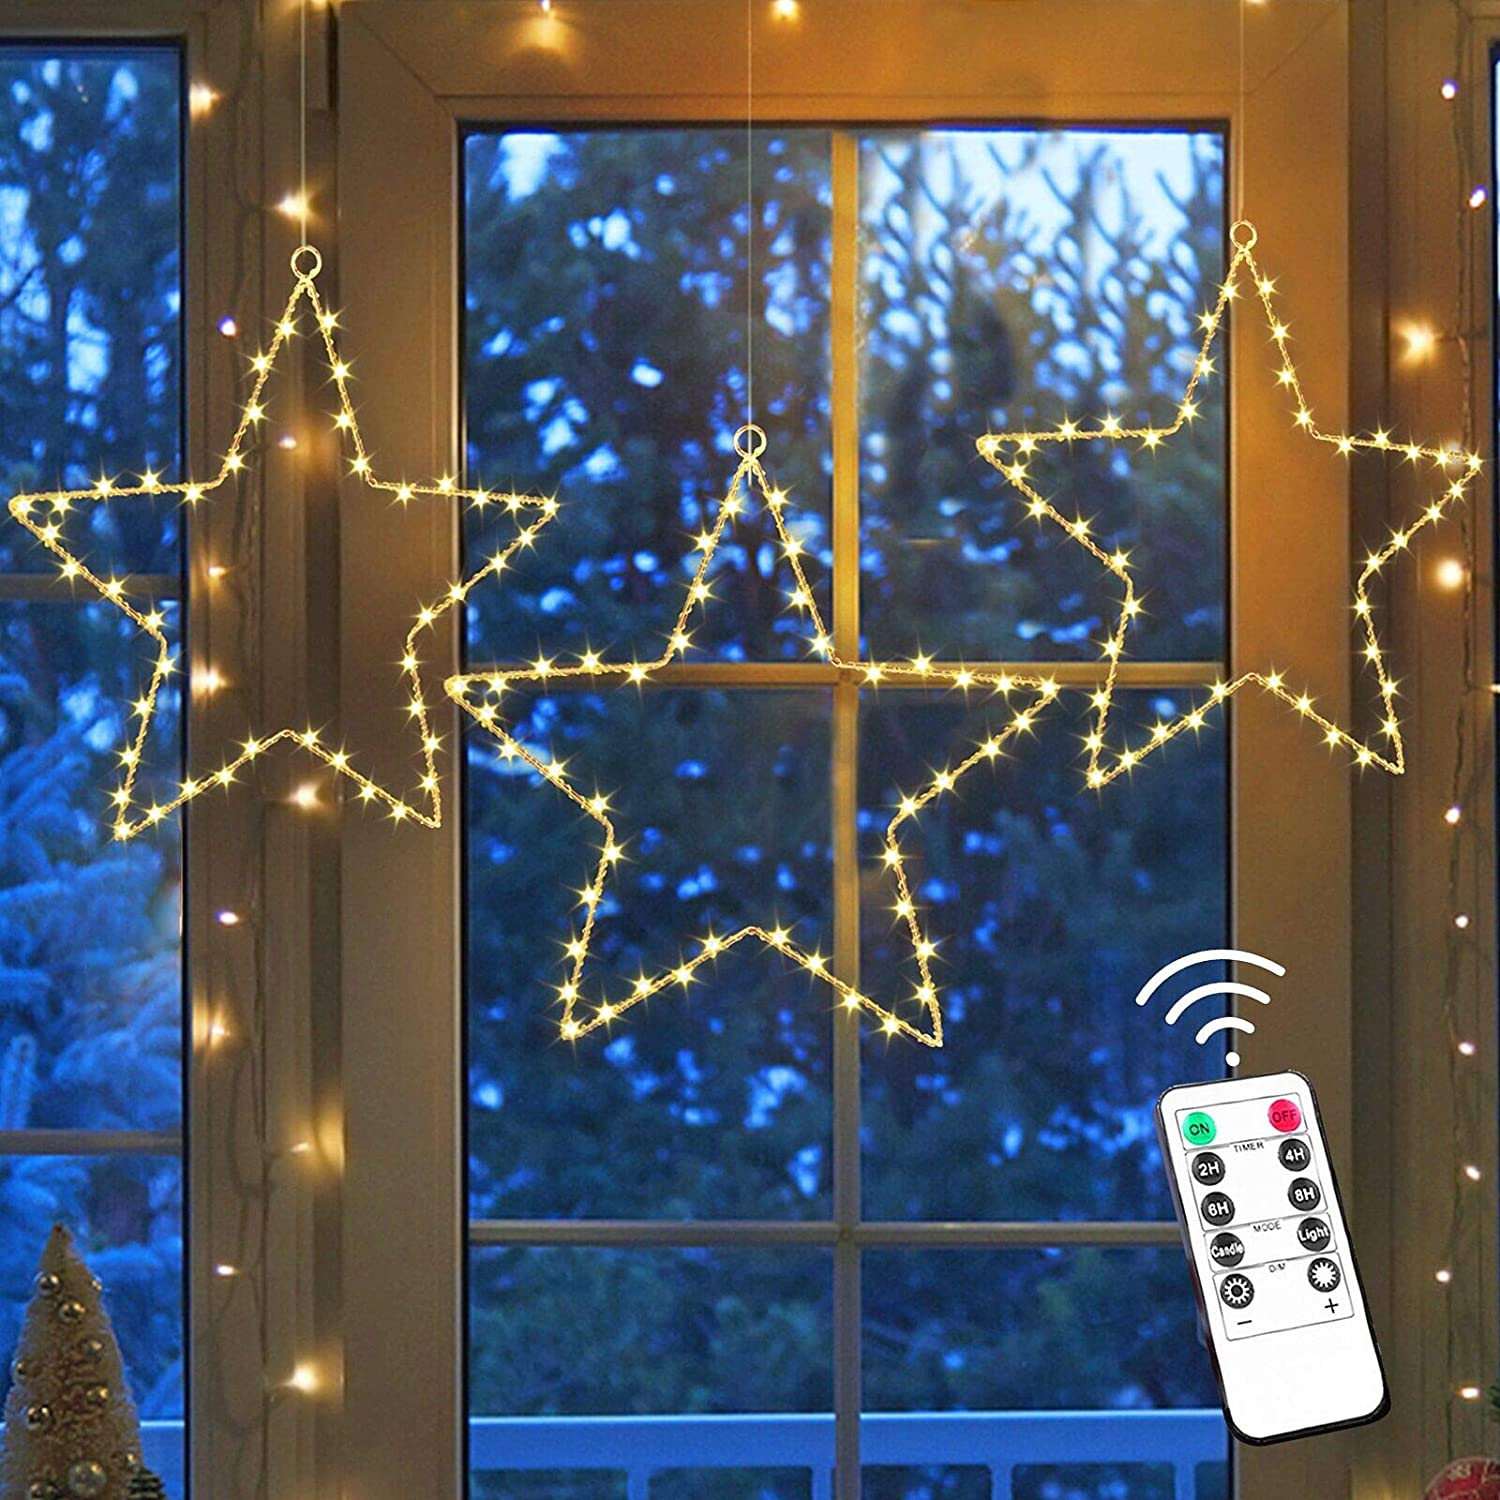 InaRock 3 Pack Christmas Window Star Lights, 45 LED Star Lights Waterproof with 8 Lighting Modes, Battery Operated Christmas Decorations with 3 Remote Controls for Outdoor Indoor Holiday Party